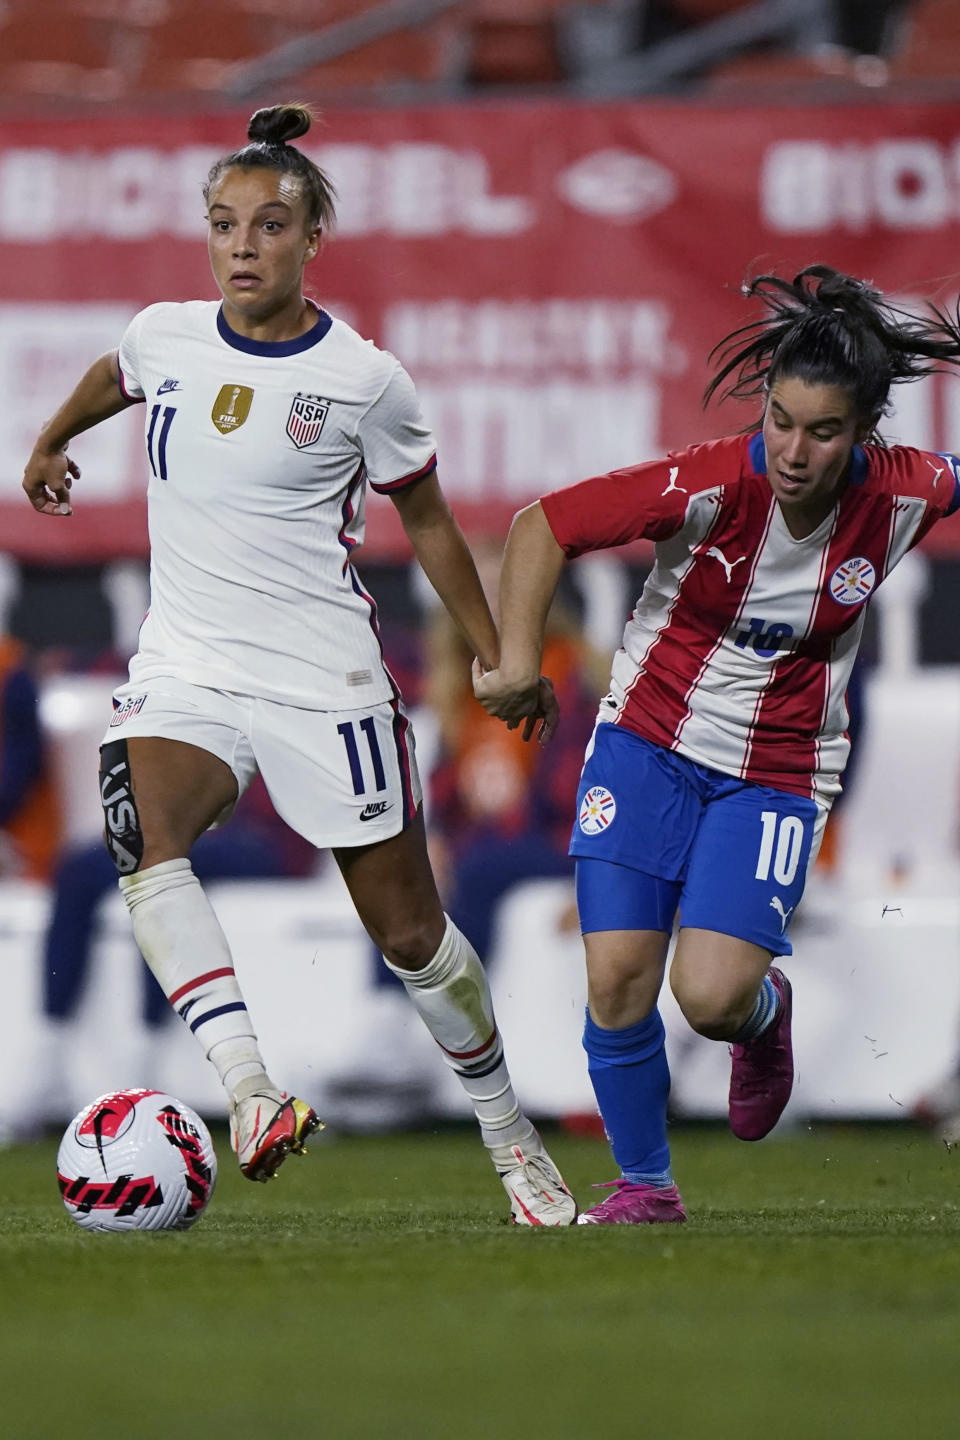 U.S. forward Mallory Pugh (11) moves the ball past Paraguay midfielder Fanny Godoy (10) during the second half of an international friendly soccer match, Thursday, Sept. 16, 2021, in Cleveland. The United States won 9-0. (AP Photo/Tony Dejak)